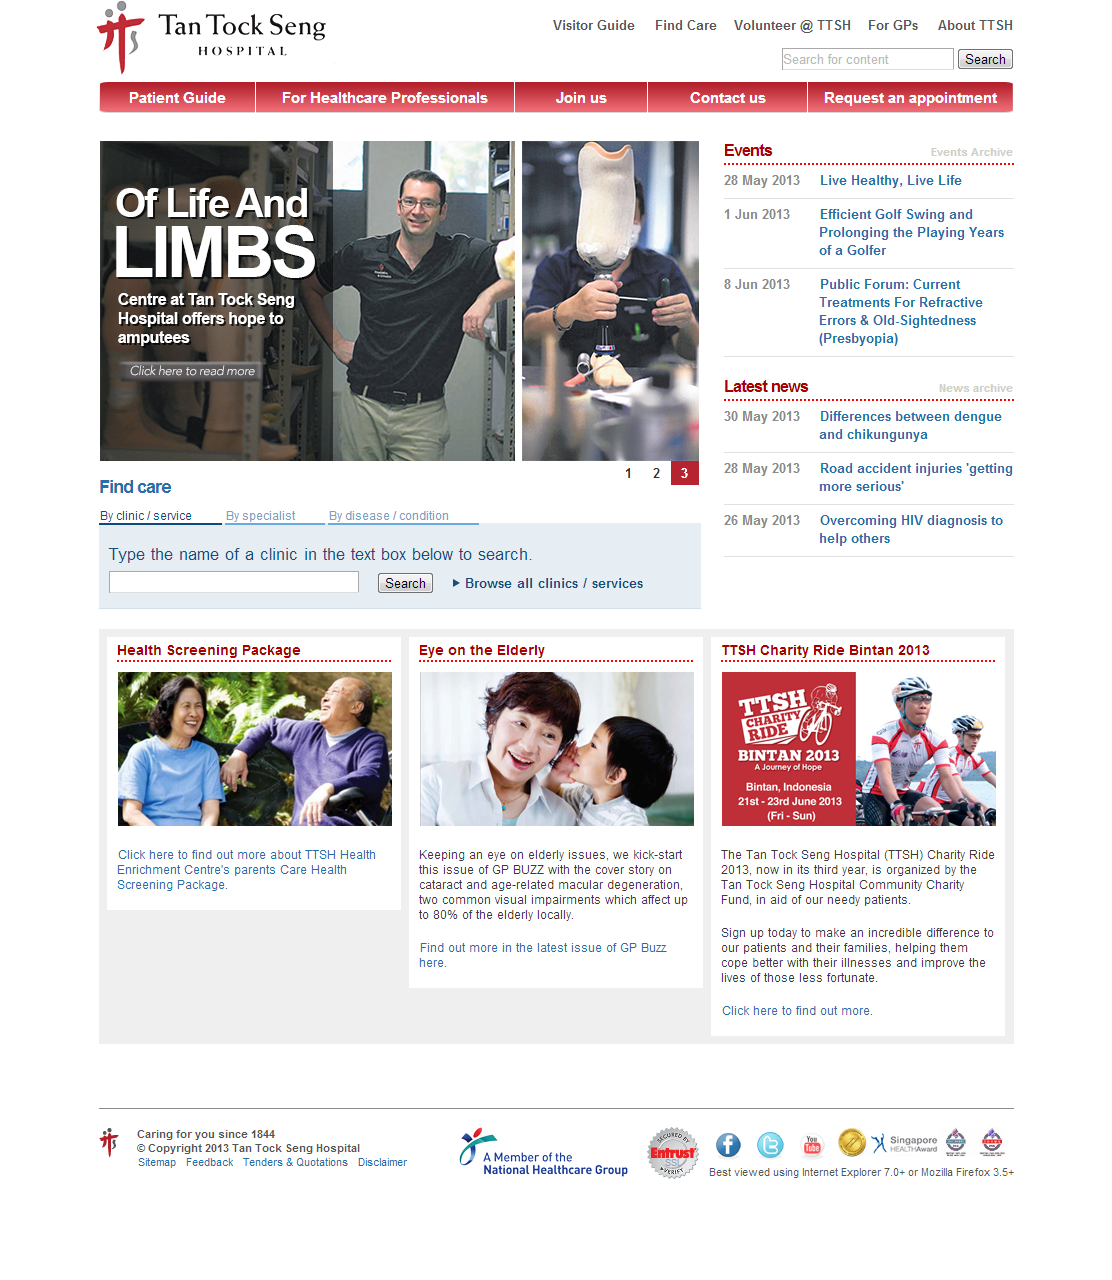 Tan Tock Seng Hospital Corporate Website Image 5